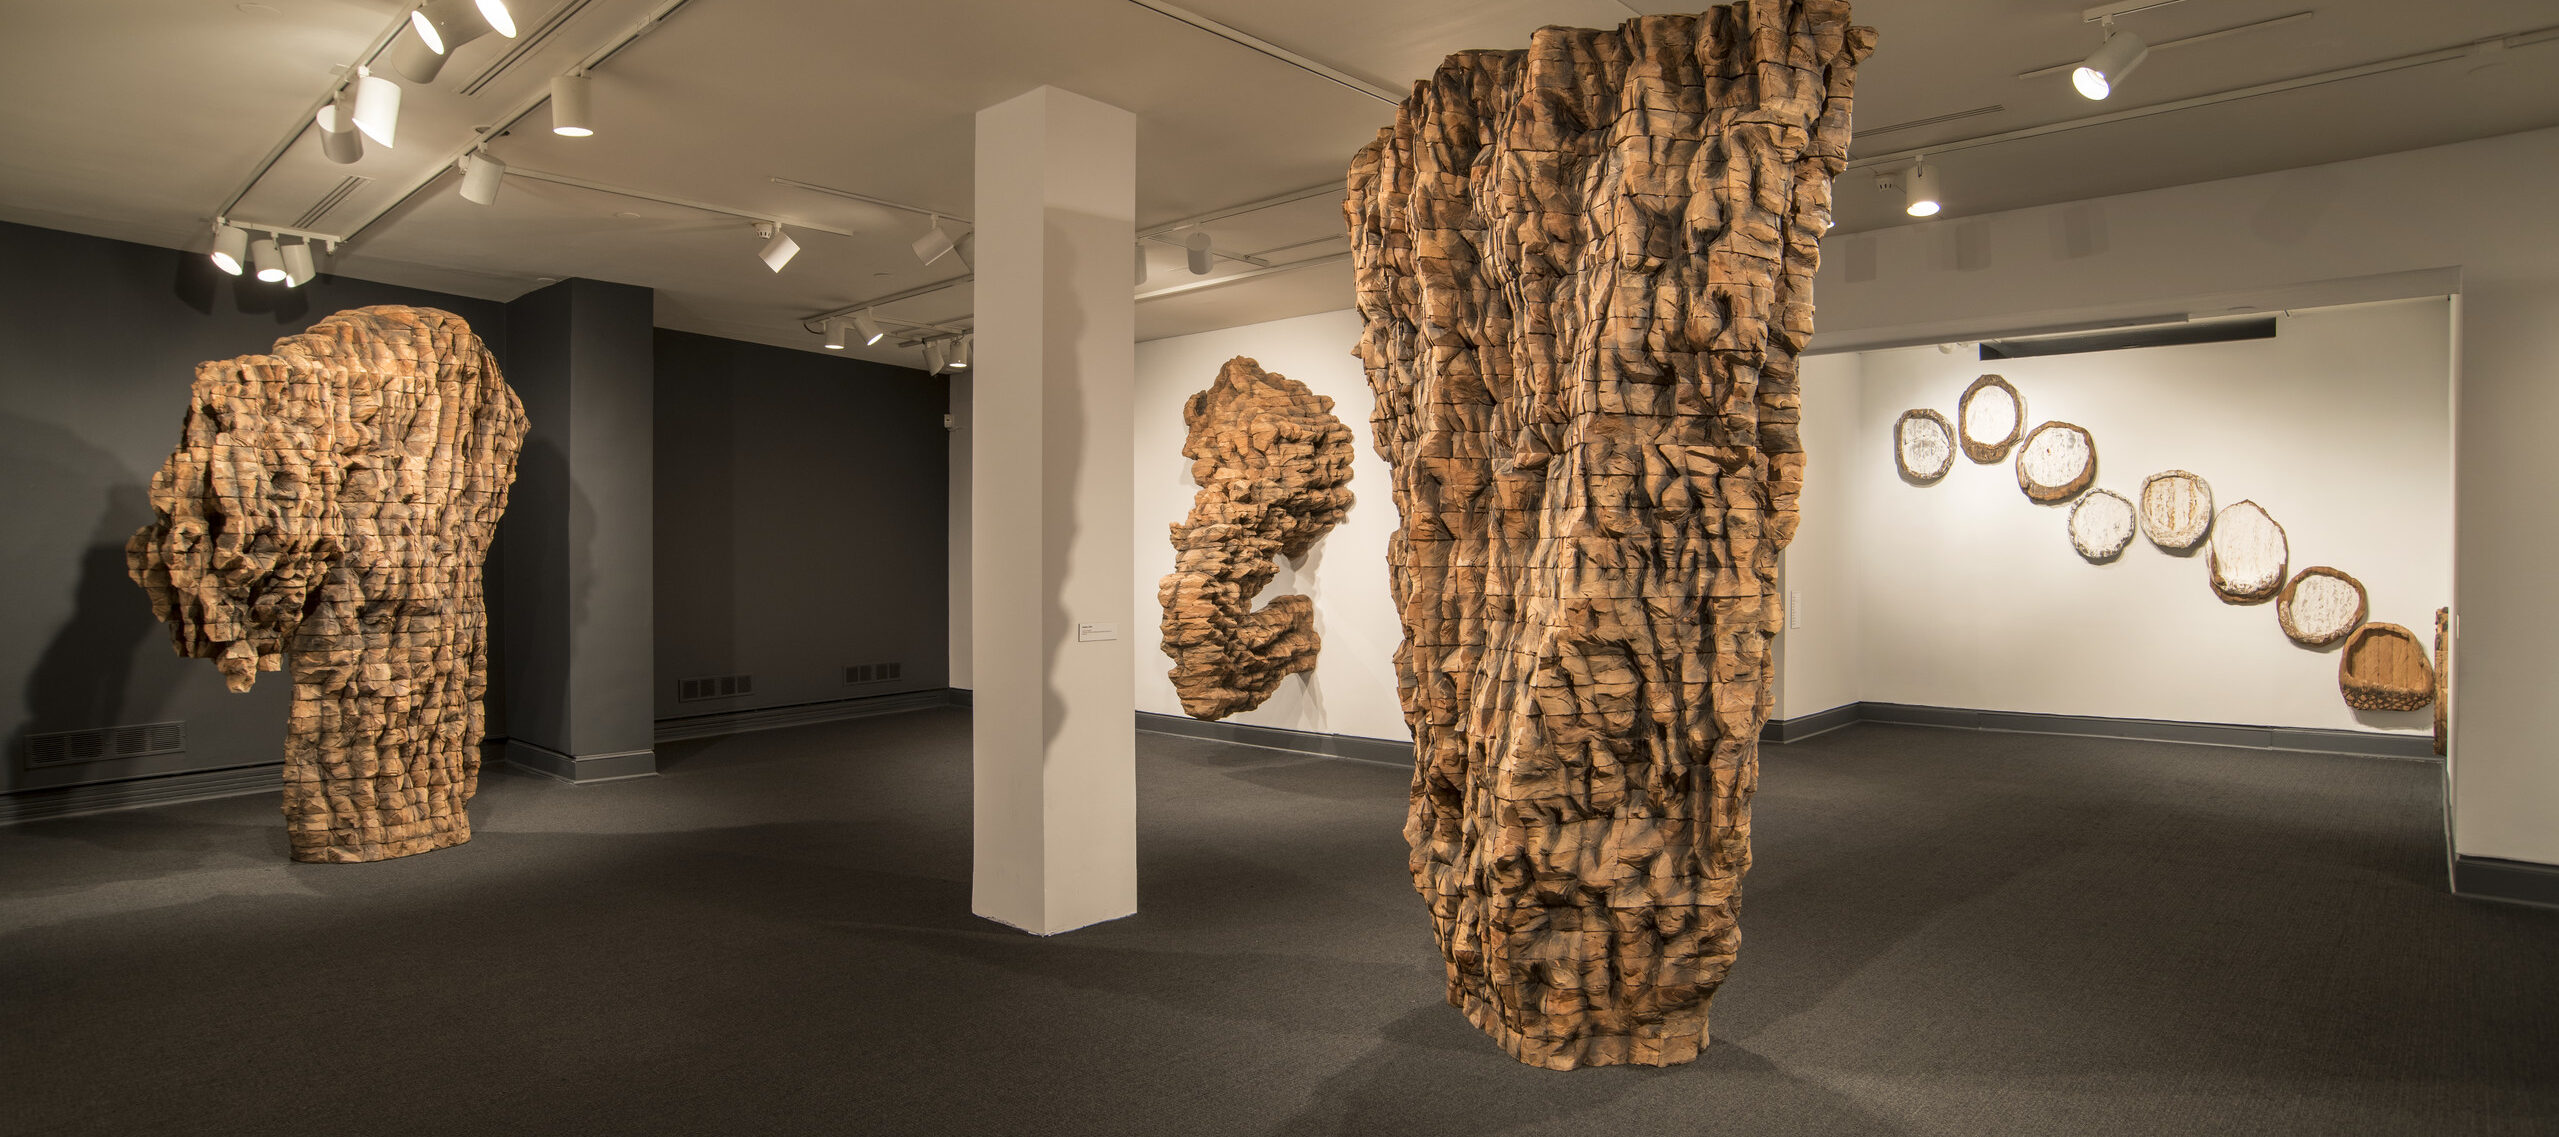 Installation view of <i>Ursula von Rydingsvard: The Contour of Feeling</i>; Pictured left to right: For Natasha (2015), SCRATCH II (2015), Krypta I (2014), ten plates (2018) (back wall); Photo by Lee Stalsworth